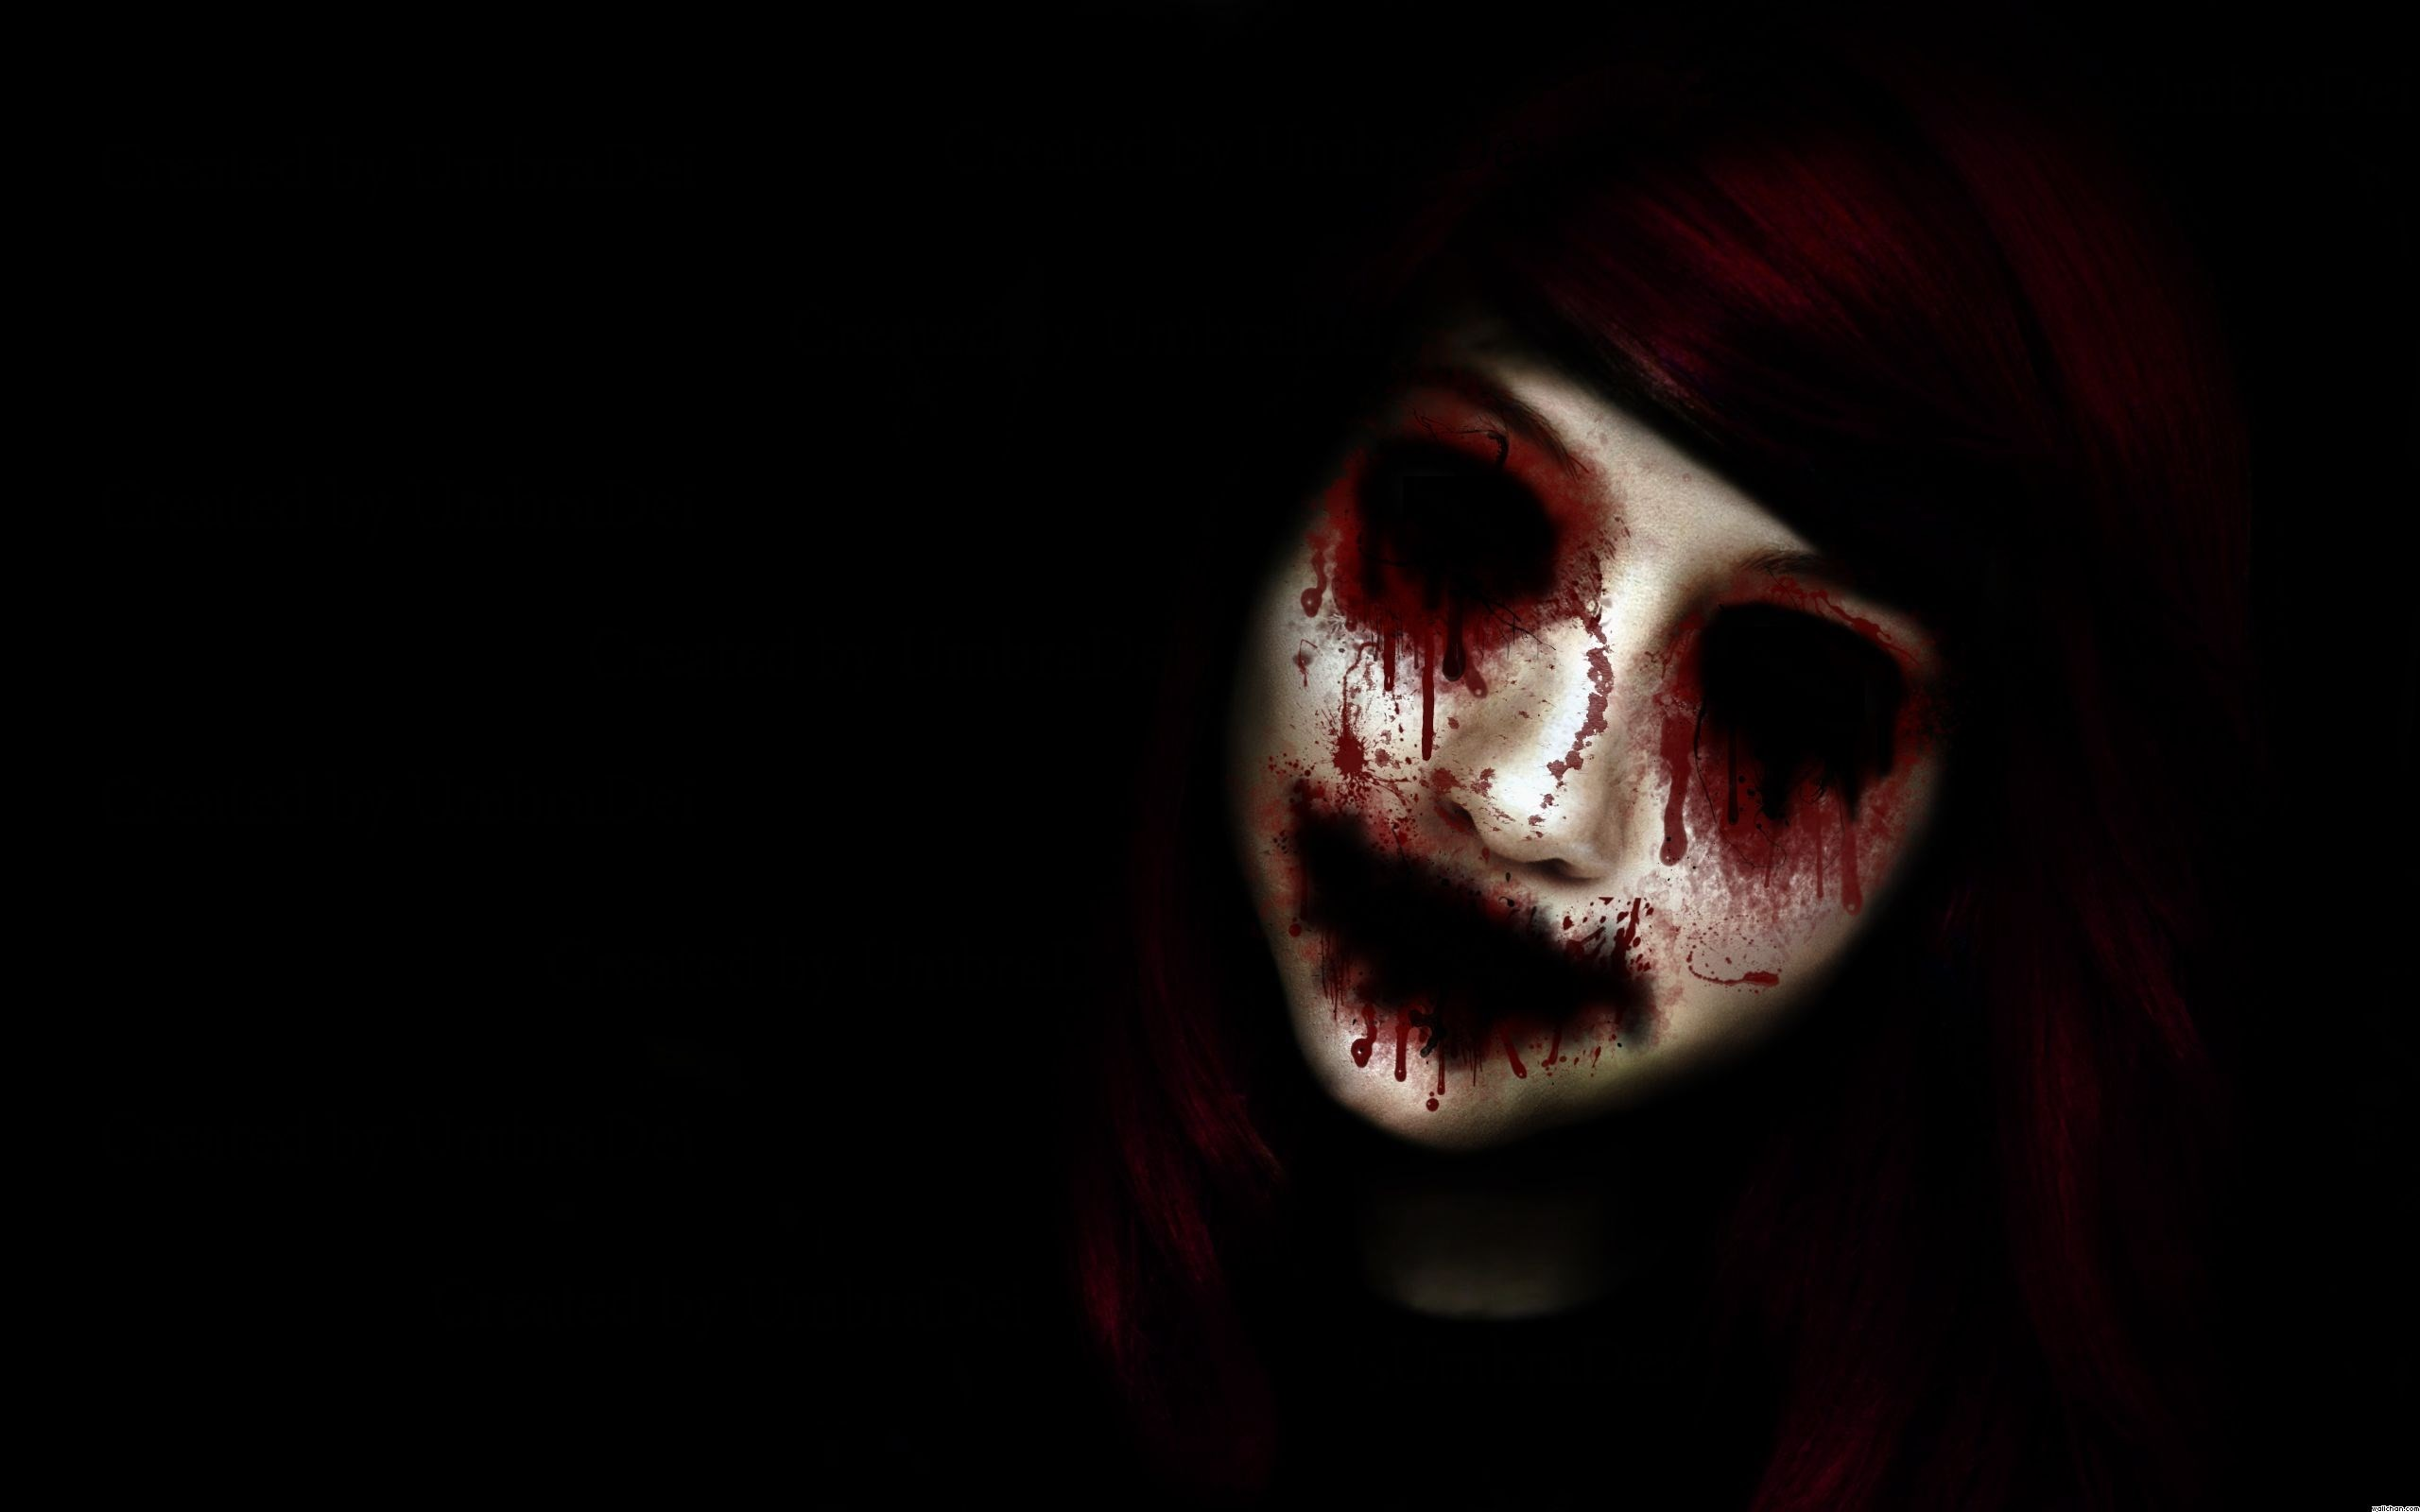 Hd Anime Girl Wallpapers 1080p Scary Clown Hd Wallpaper 73 Images